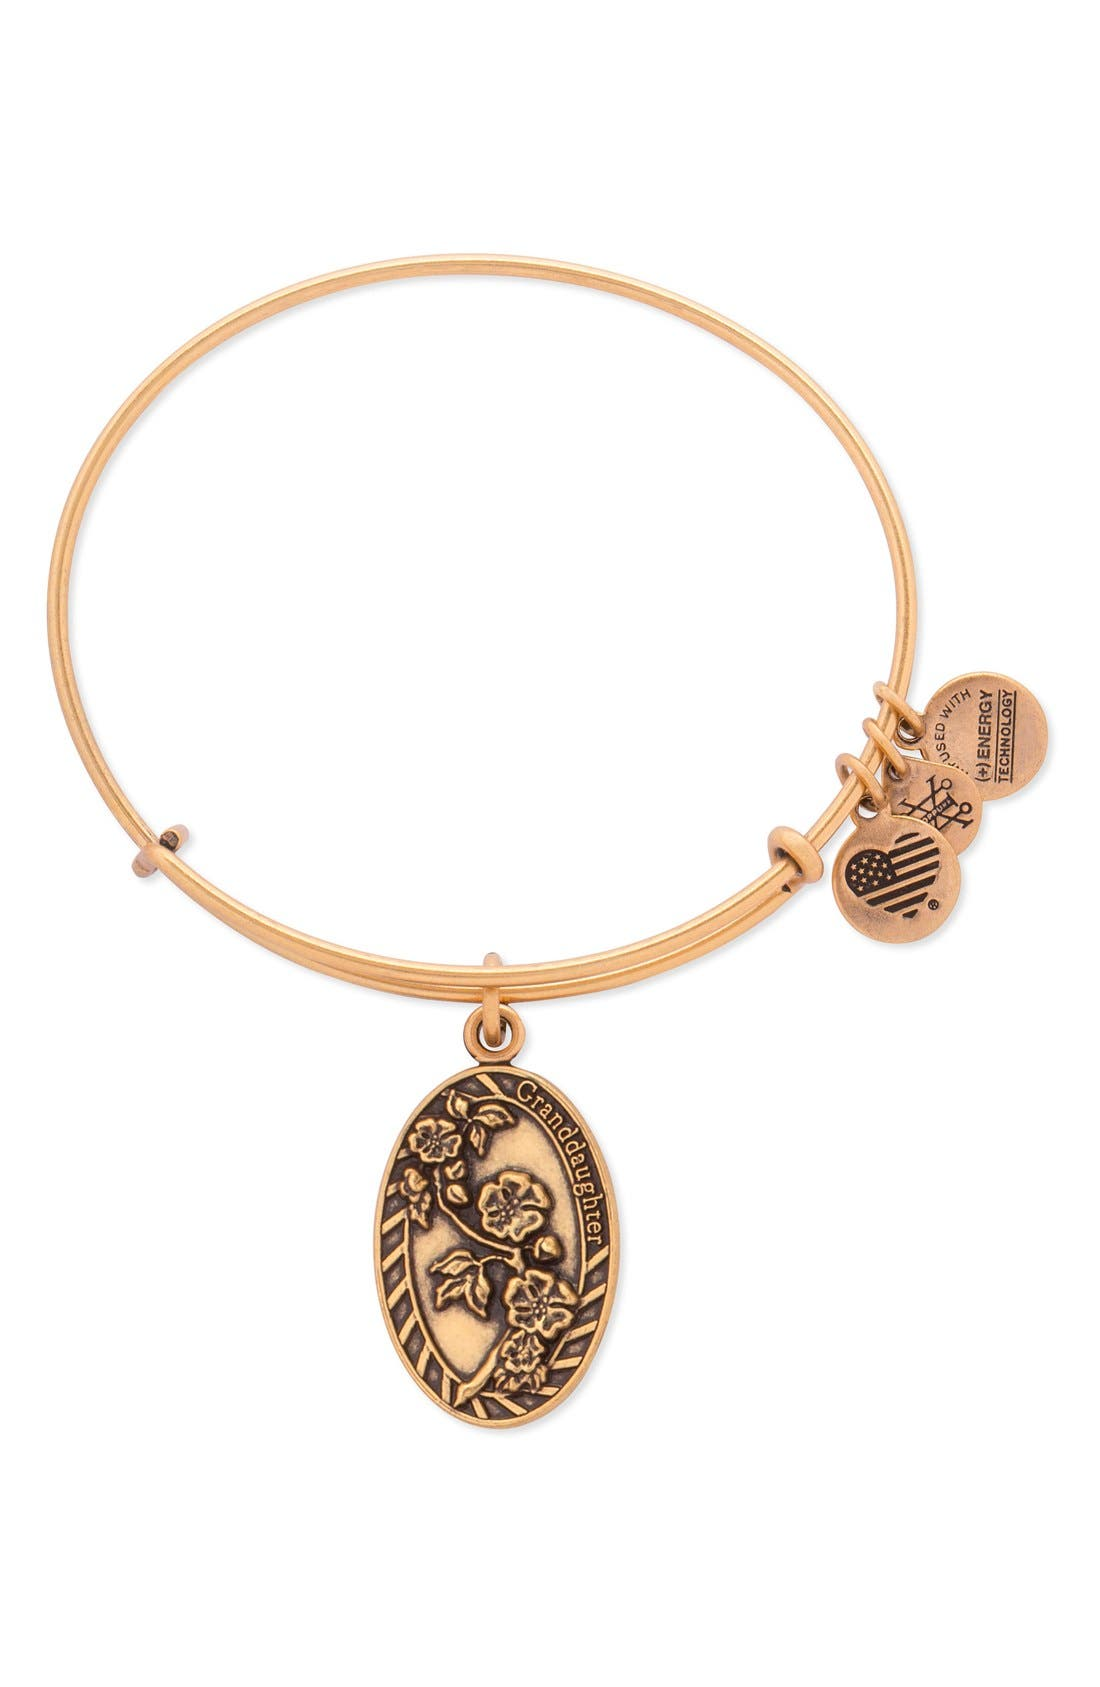 Alex and Ani 'Granddaughter' Adjustable Wire Bangle